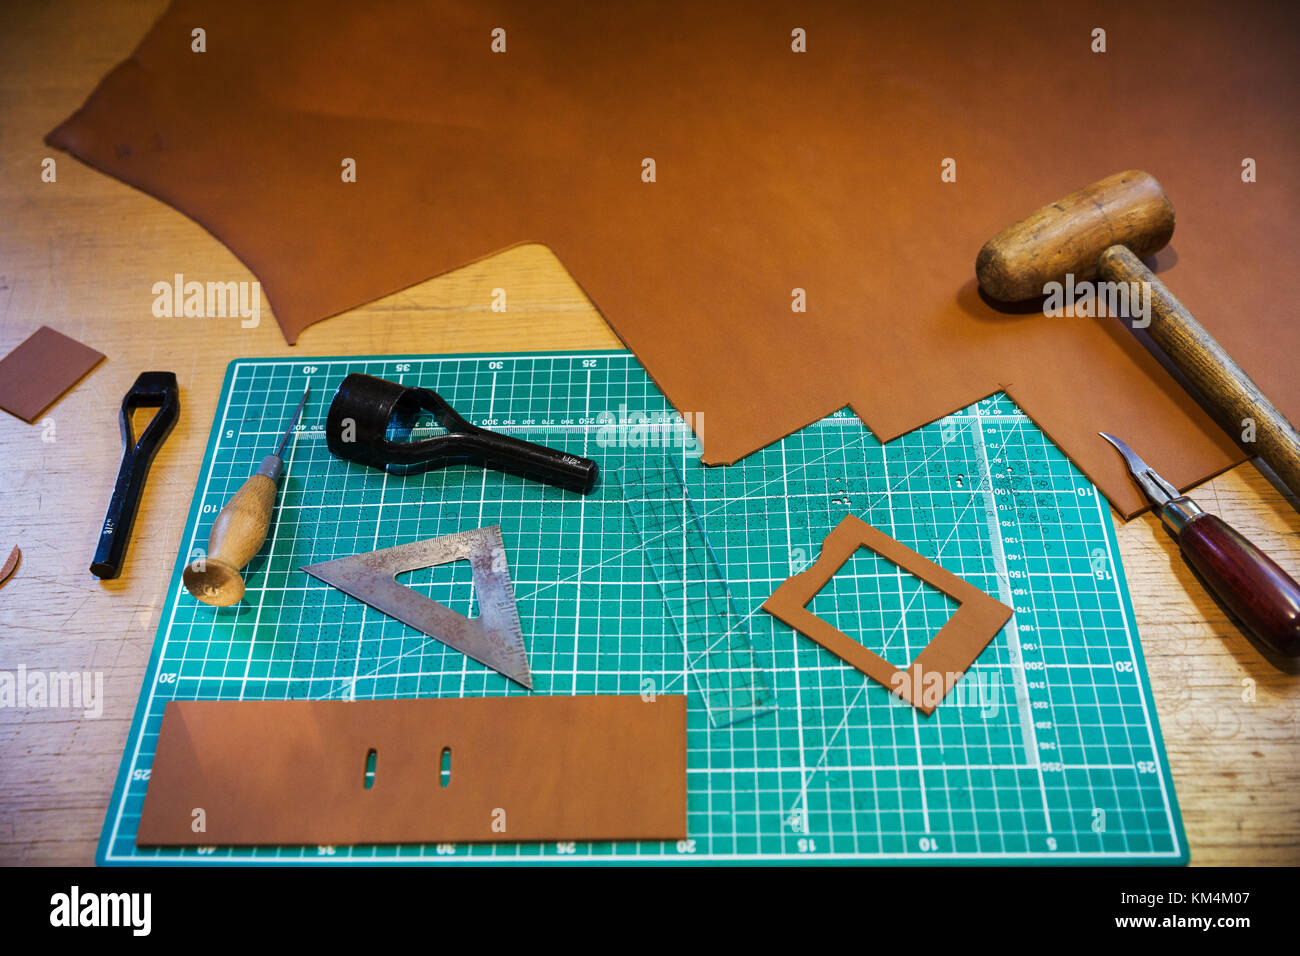 Workbench and cutting mat with a large smooth piece of brown leather, and tools for measuring cutting and stitching, - Stock Image